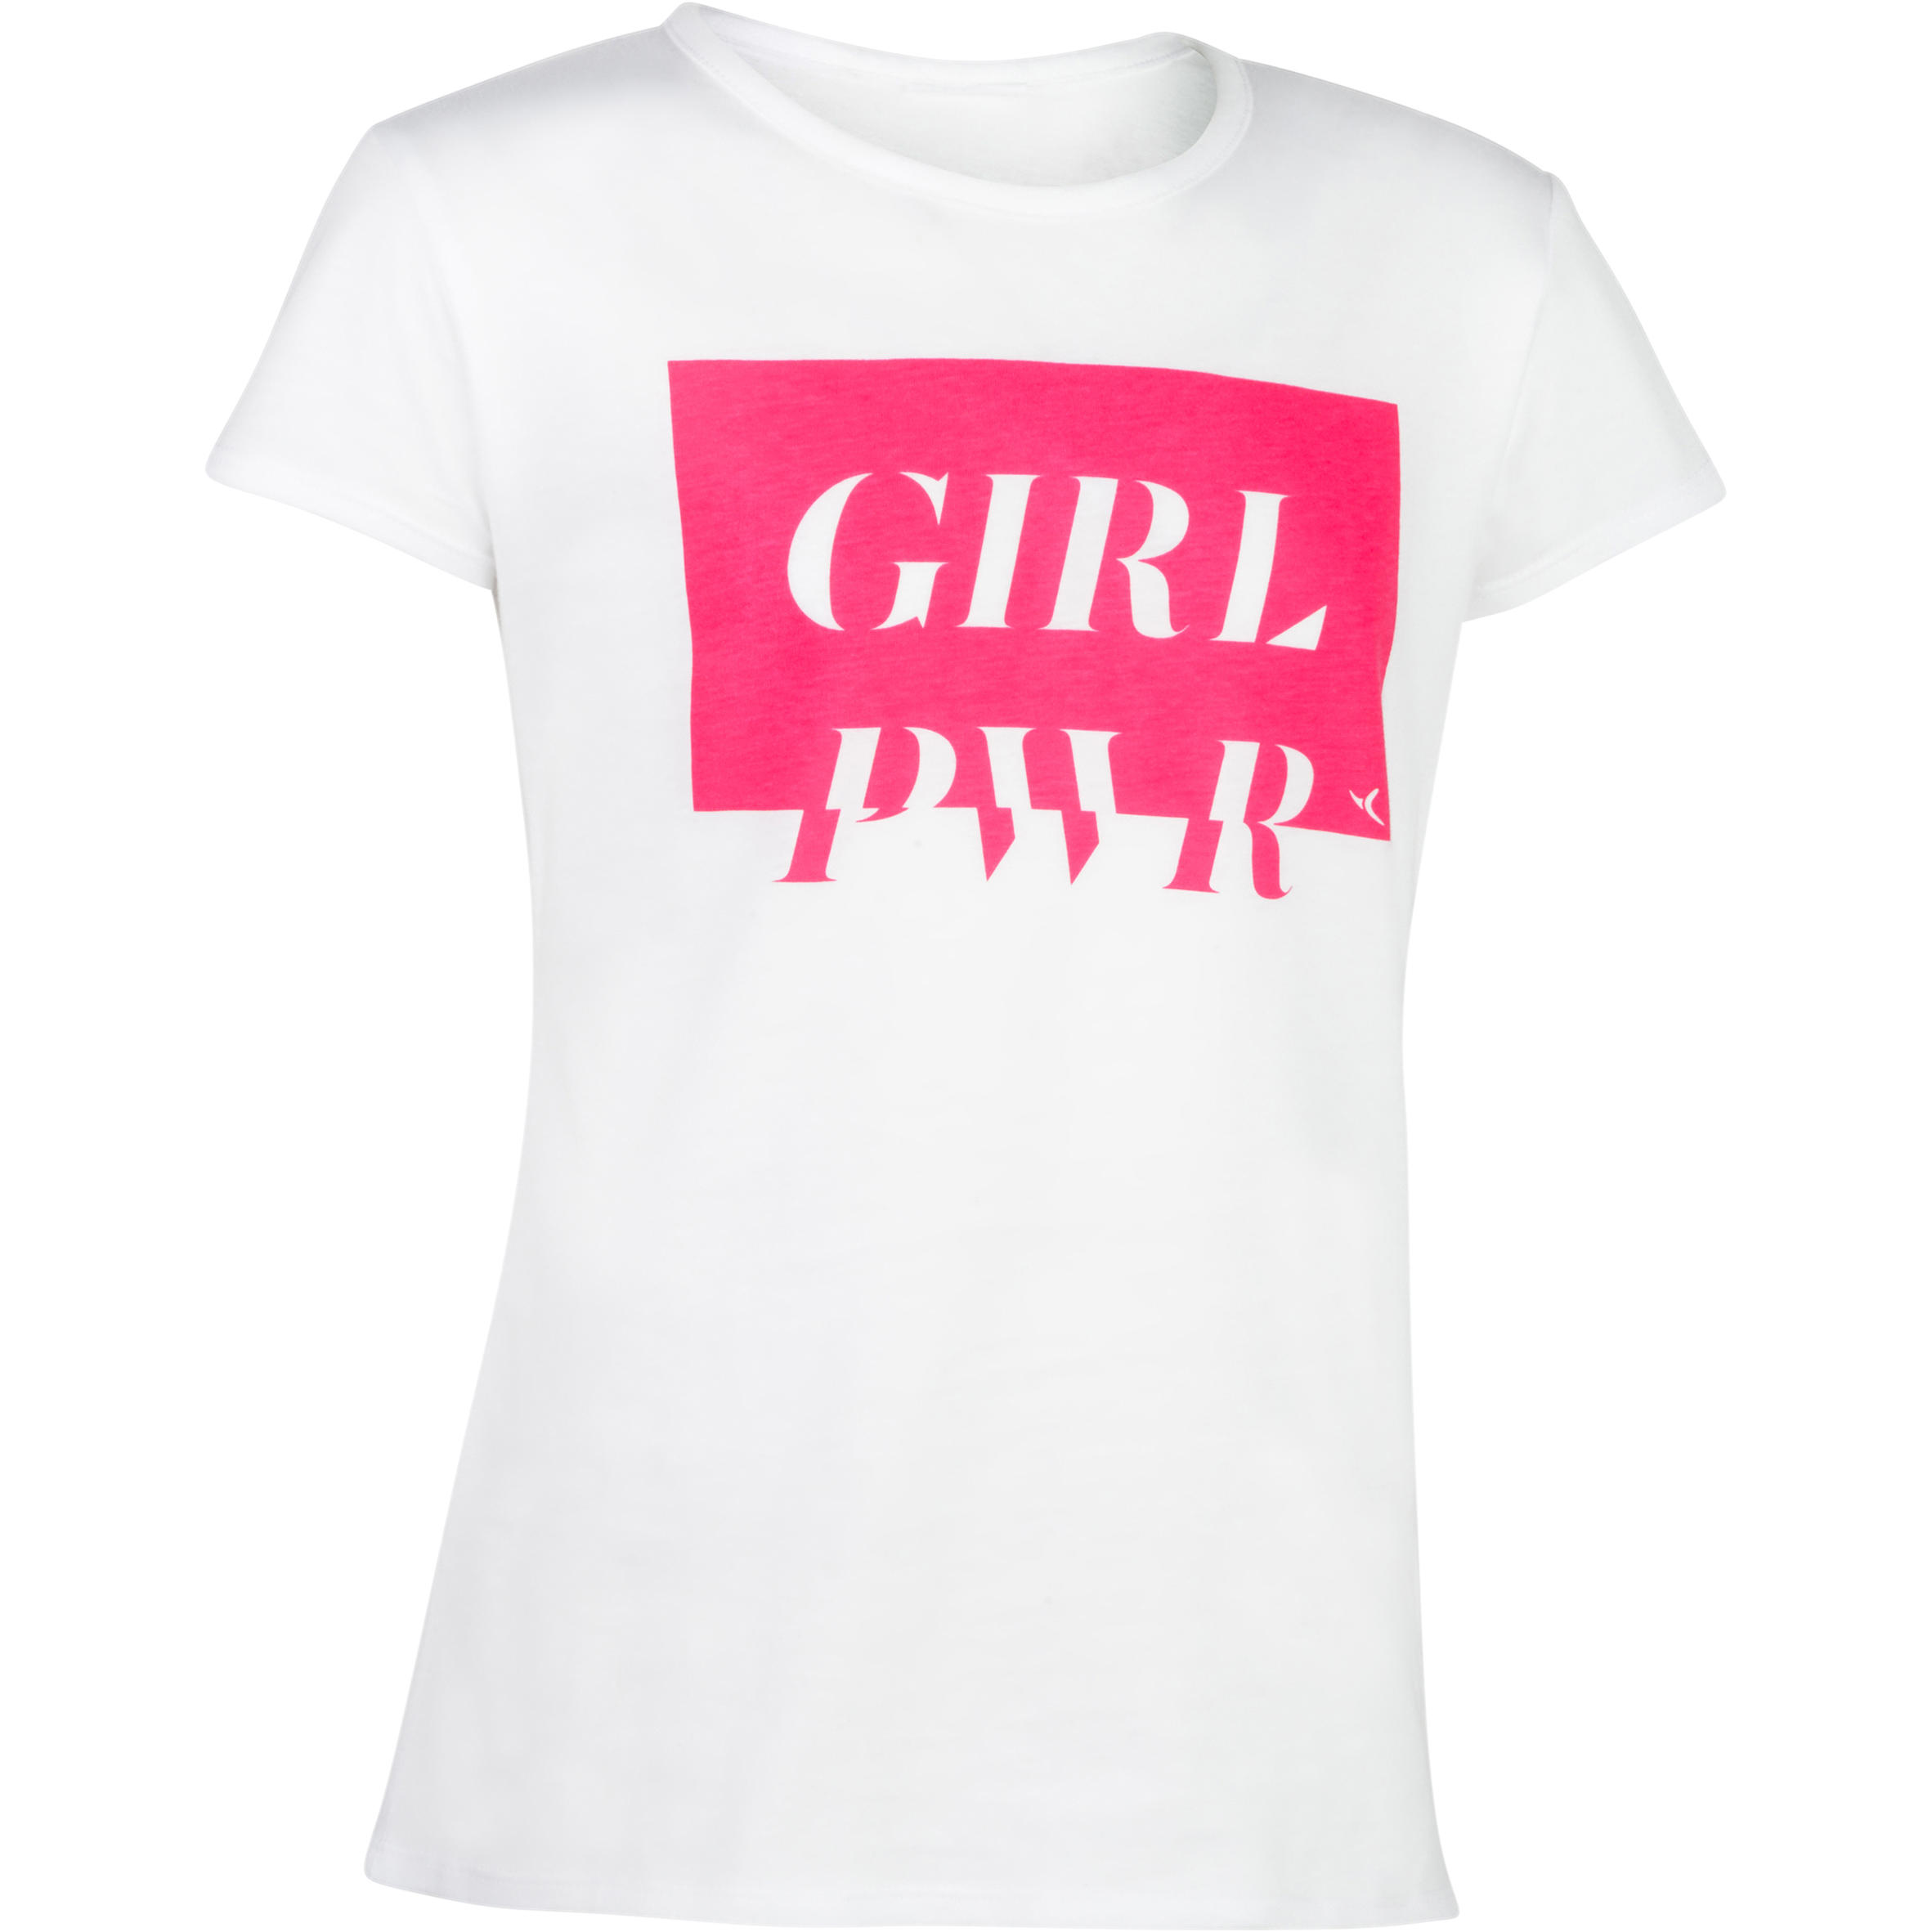 Playera 100 MC gimnasia niña estampado blanco rosa